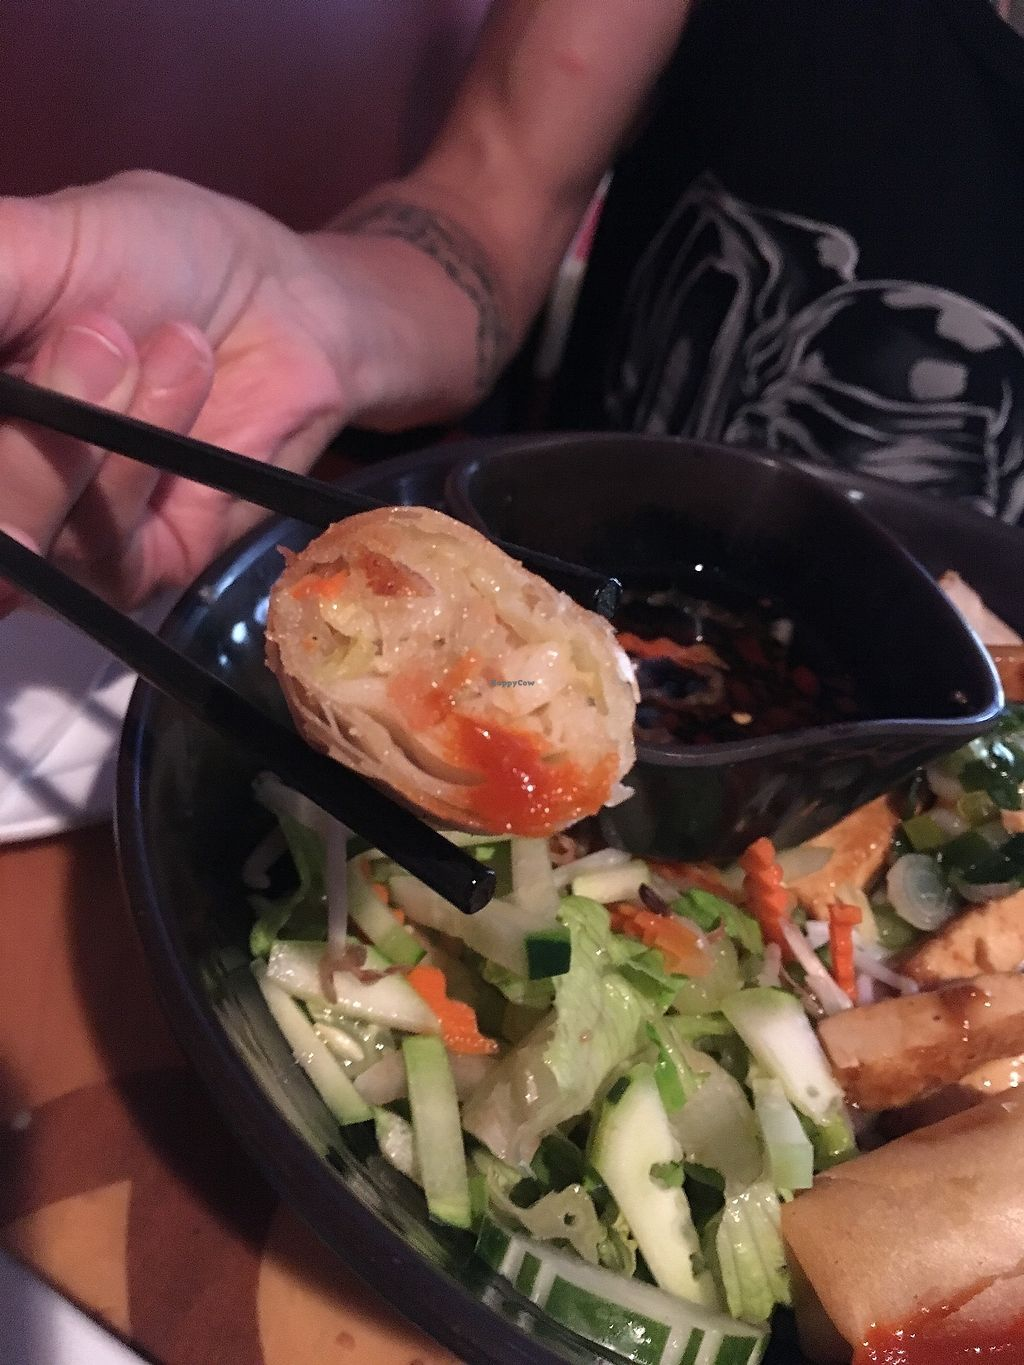 """Photo of Tan Lac Vien Vietnamese Bistro  by <a href=""""/members/profile/ecoRDN"""">ecoRDN</a> <br/>Bun Vegan Spring Roll Tan Lac Vien - Squirrel Hill Photo by ecoRDN - ecoRDN.com <br/> July 16, 2017  - <a href='/contact/abuse/image/93466/280995'>Report</a>"""